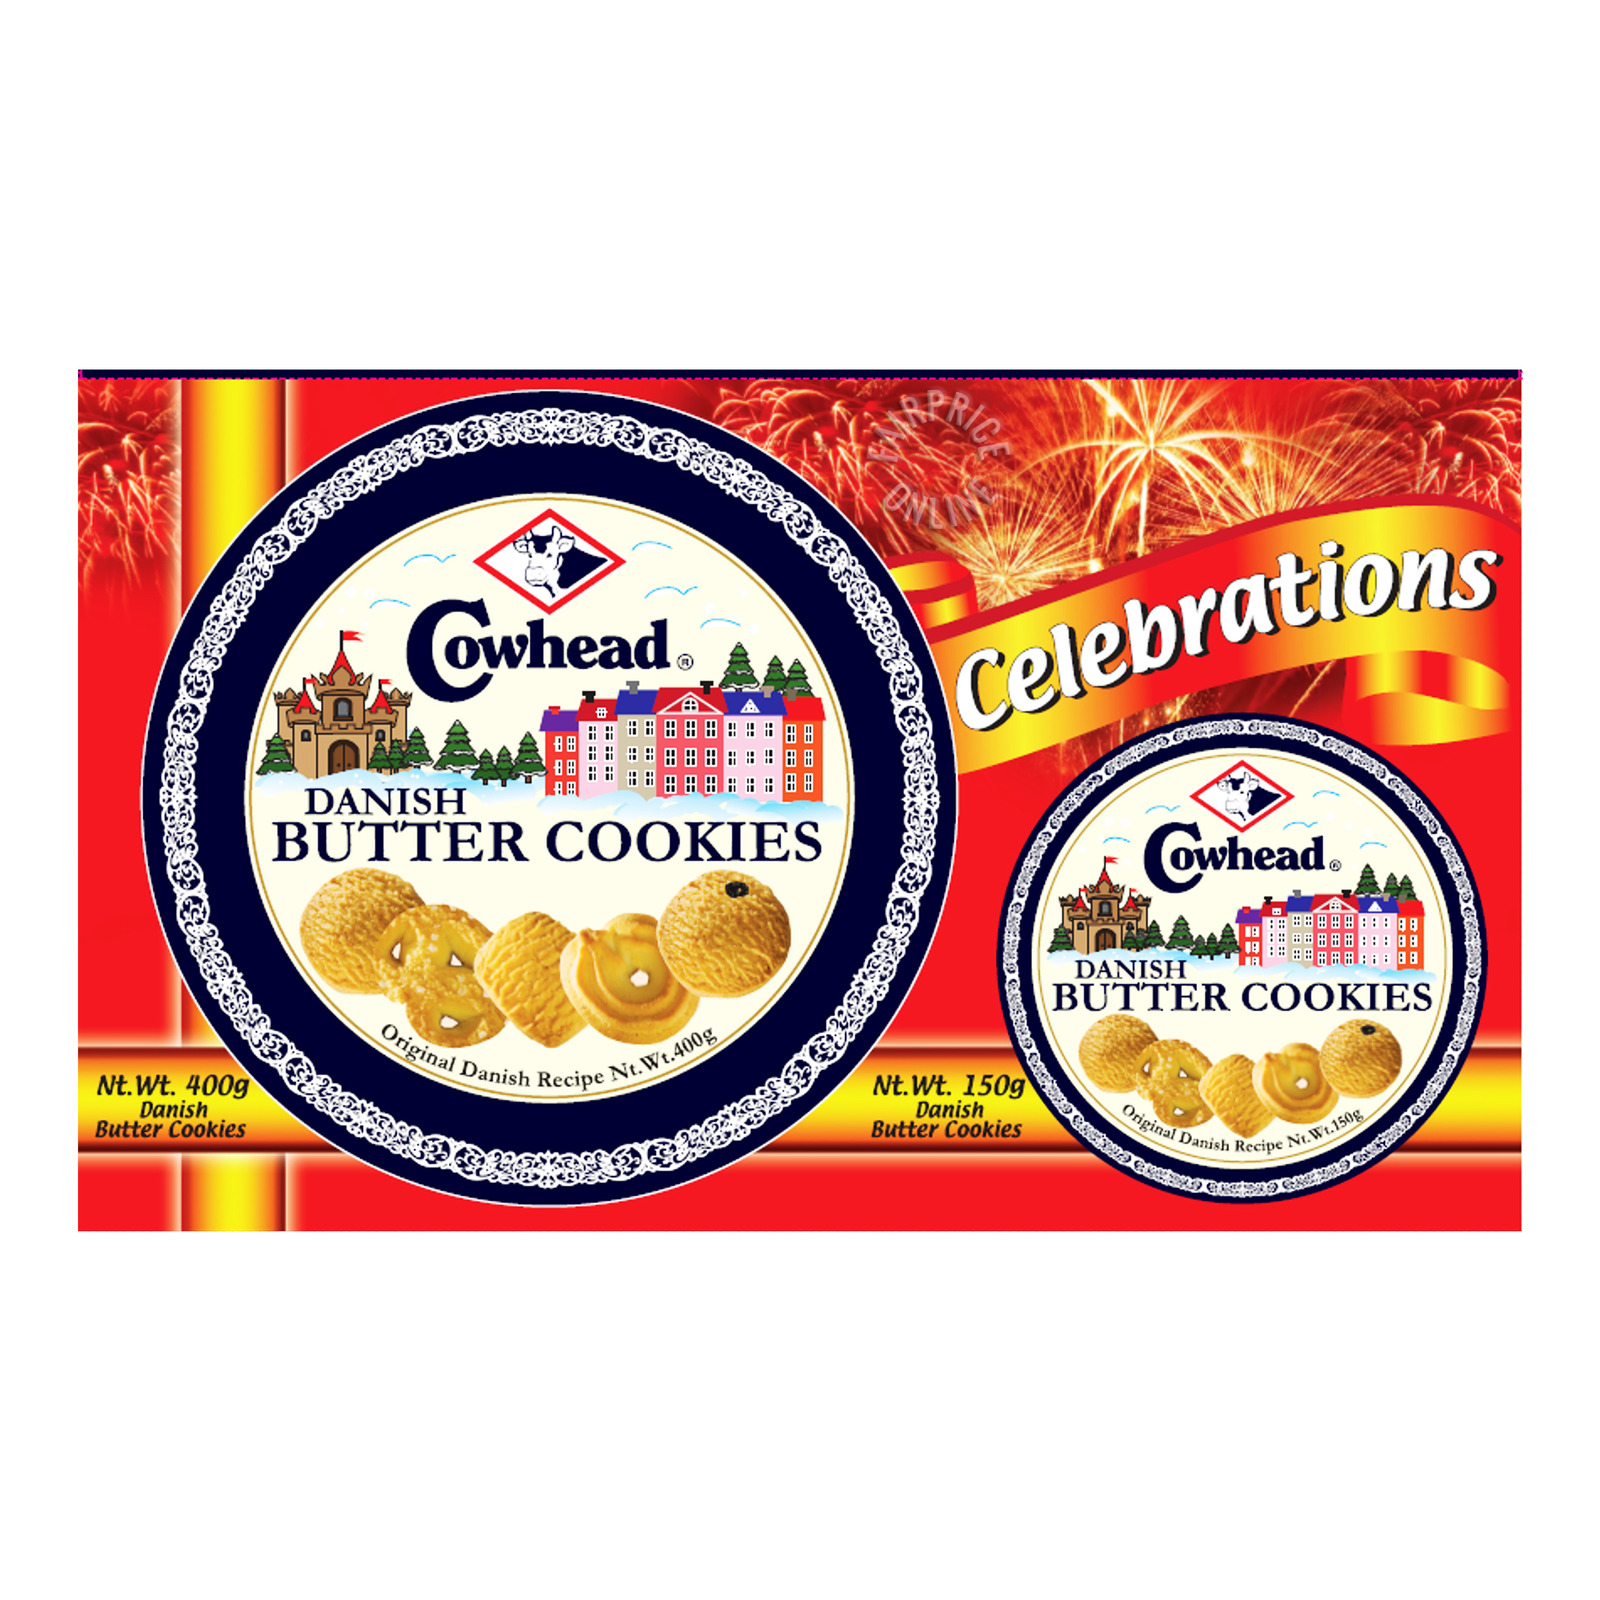 Cowhead Danish Butter Cookies